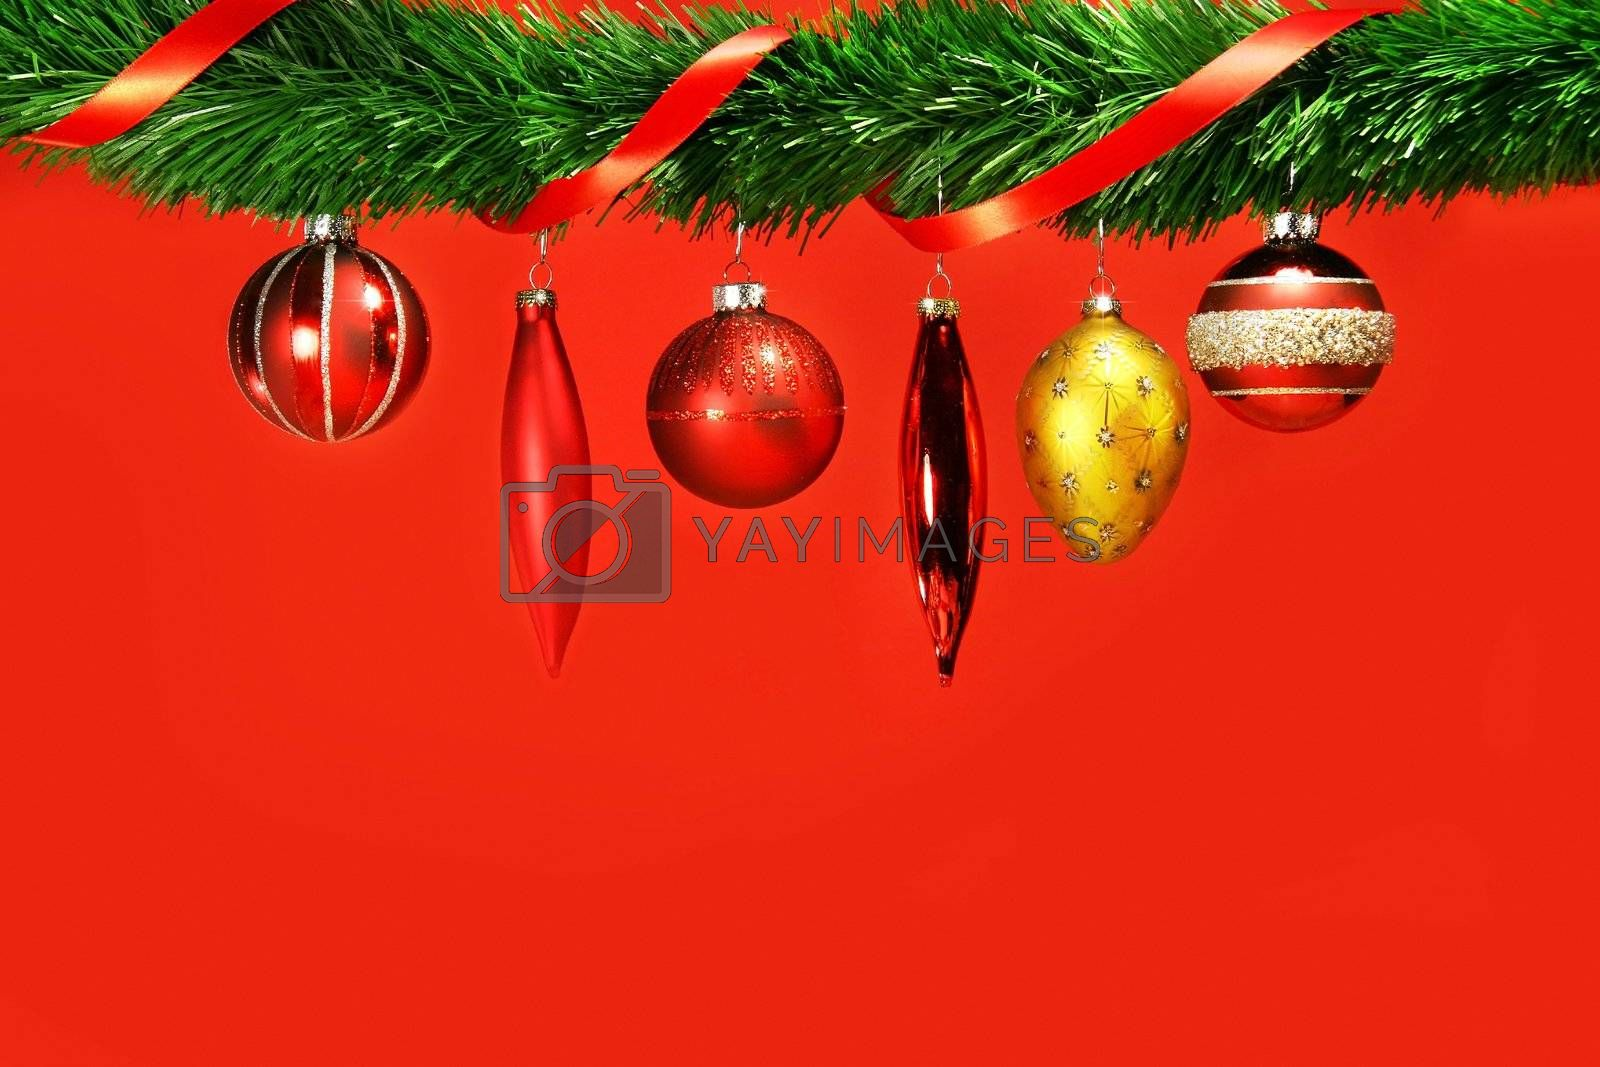 Variety of holidays balls hanging from green garland by Sandralise